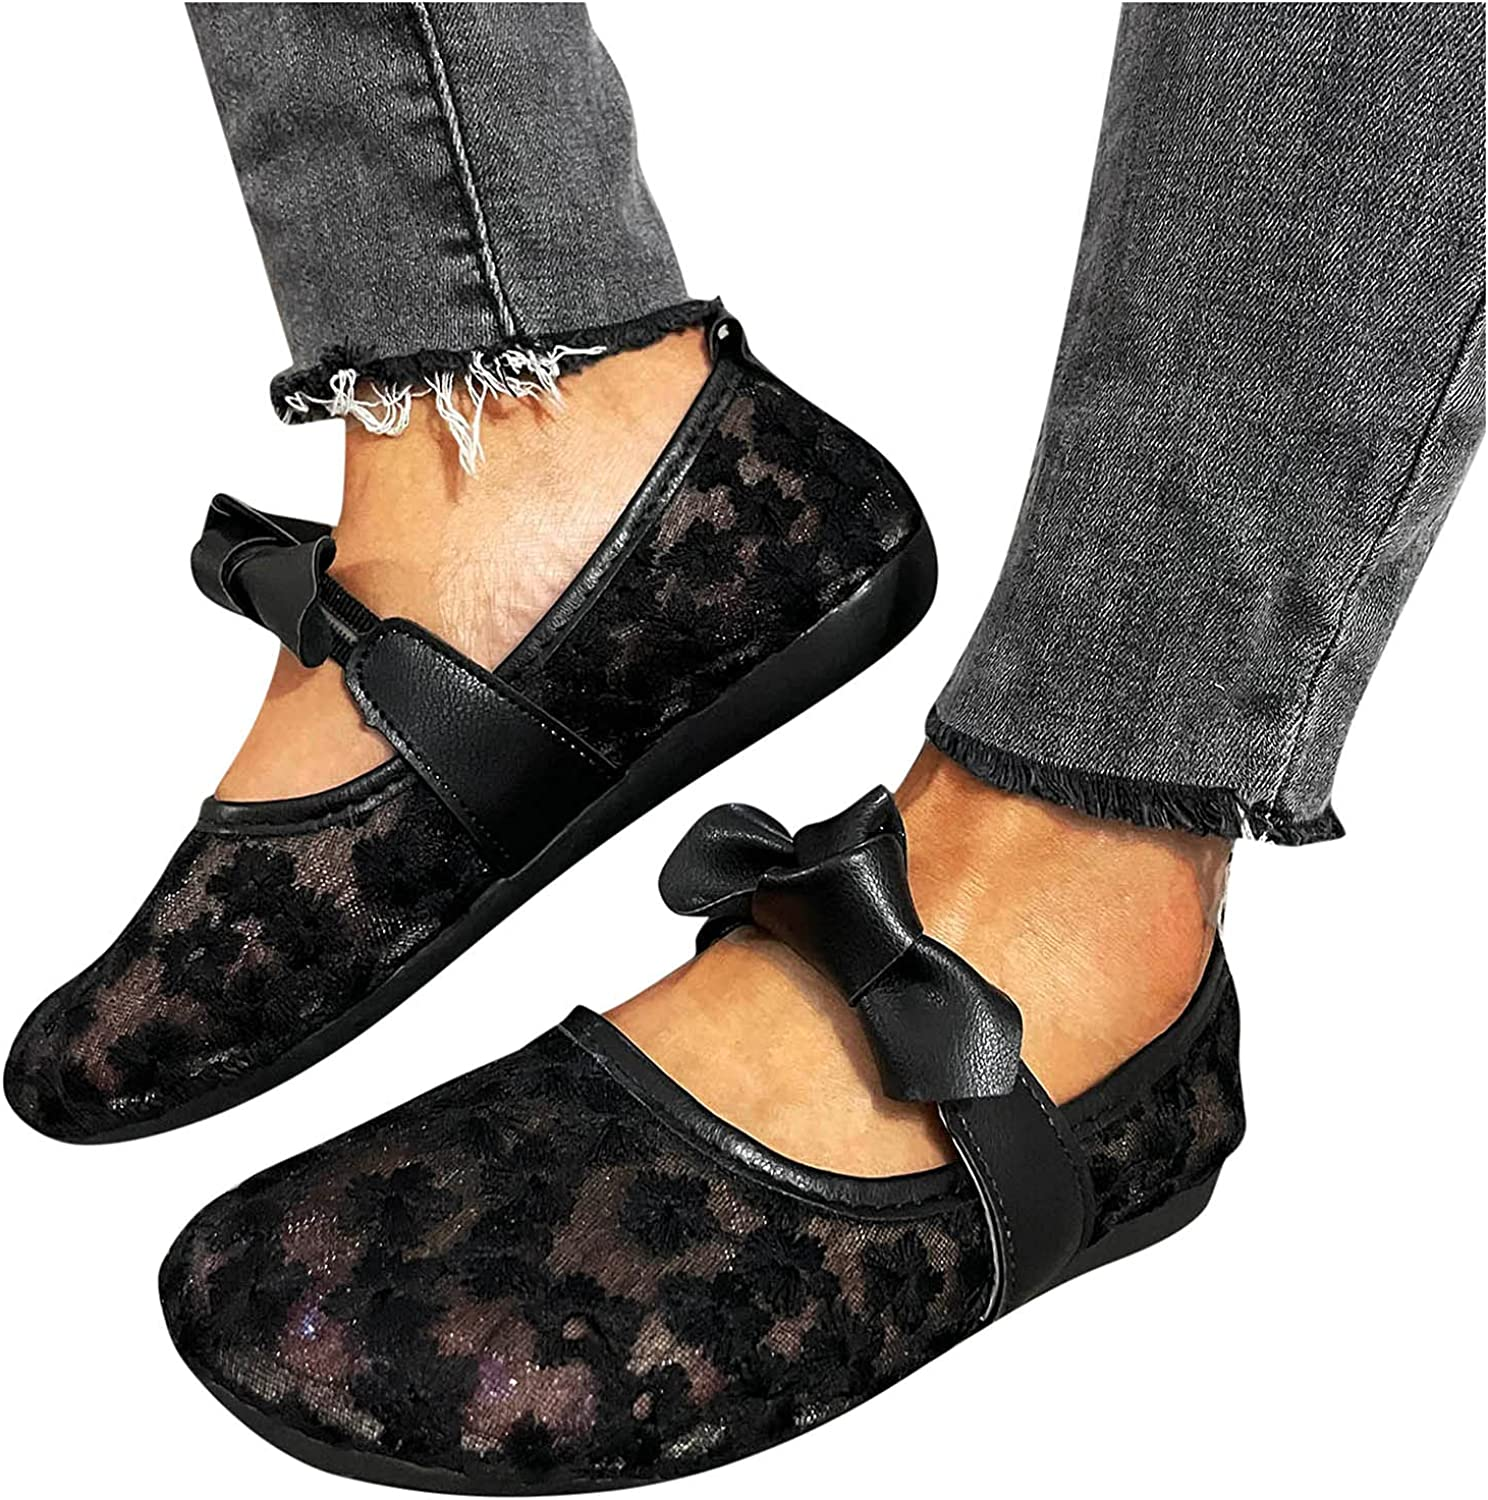 USYFAKGH Pointed Toe Flats for Women Women's Breathable Hollow Flat Shoes Bowknot Lace Mesh Cloth Single Shoes Black